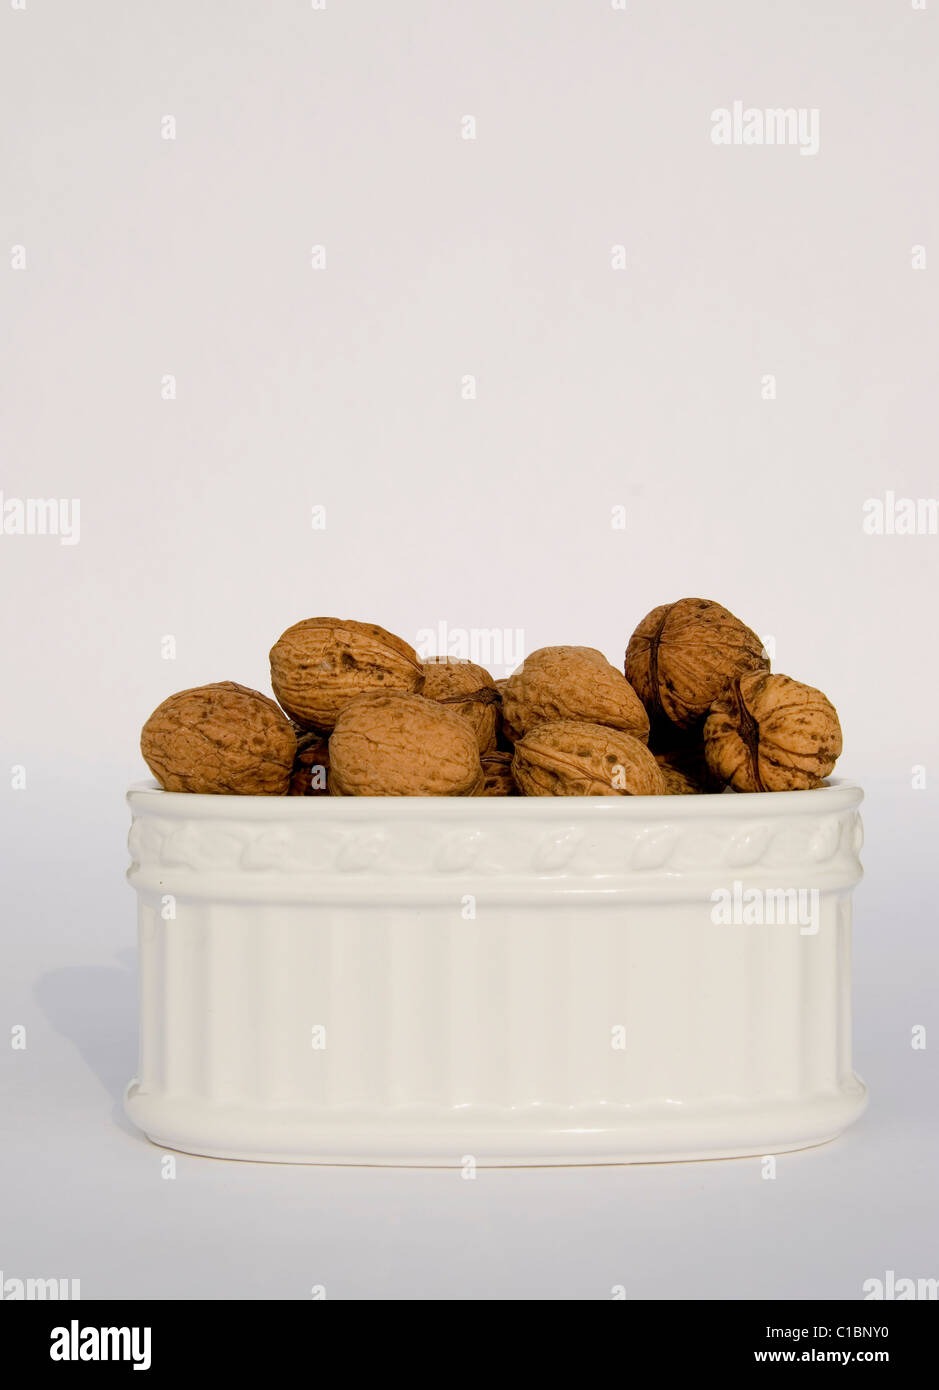 Box of different sizes walnuts isolated on a white background - Stock Image